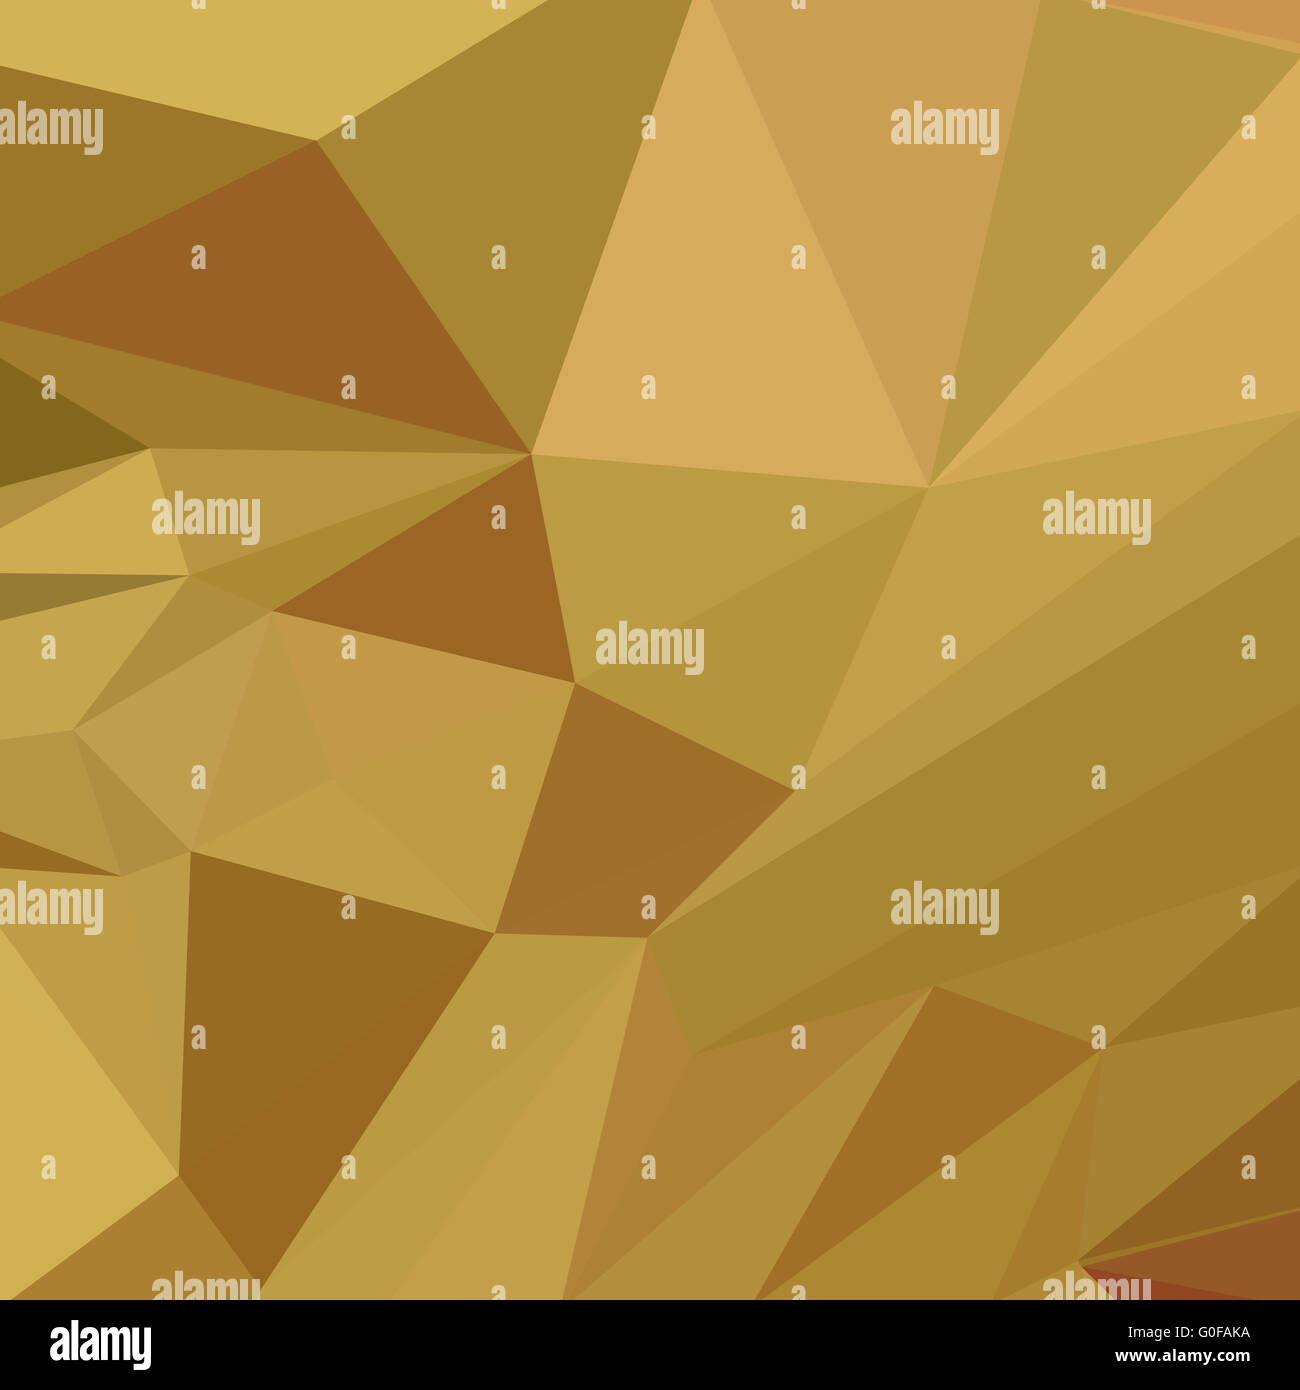 Goldenrod Yellow Abstract Low Polygon Background - Stock Image